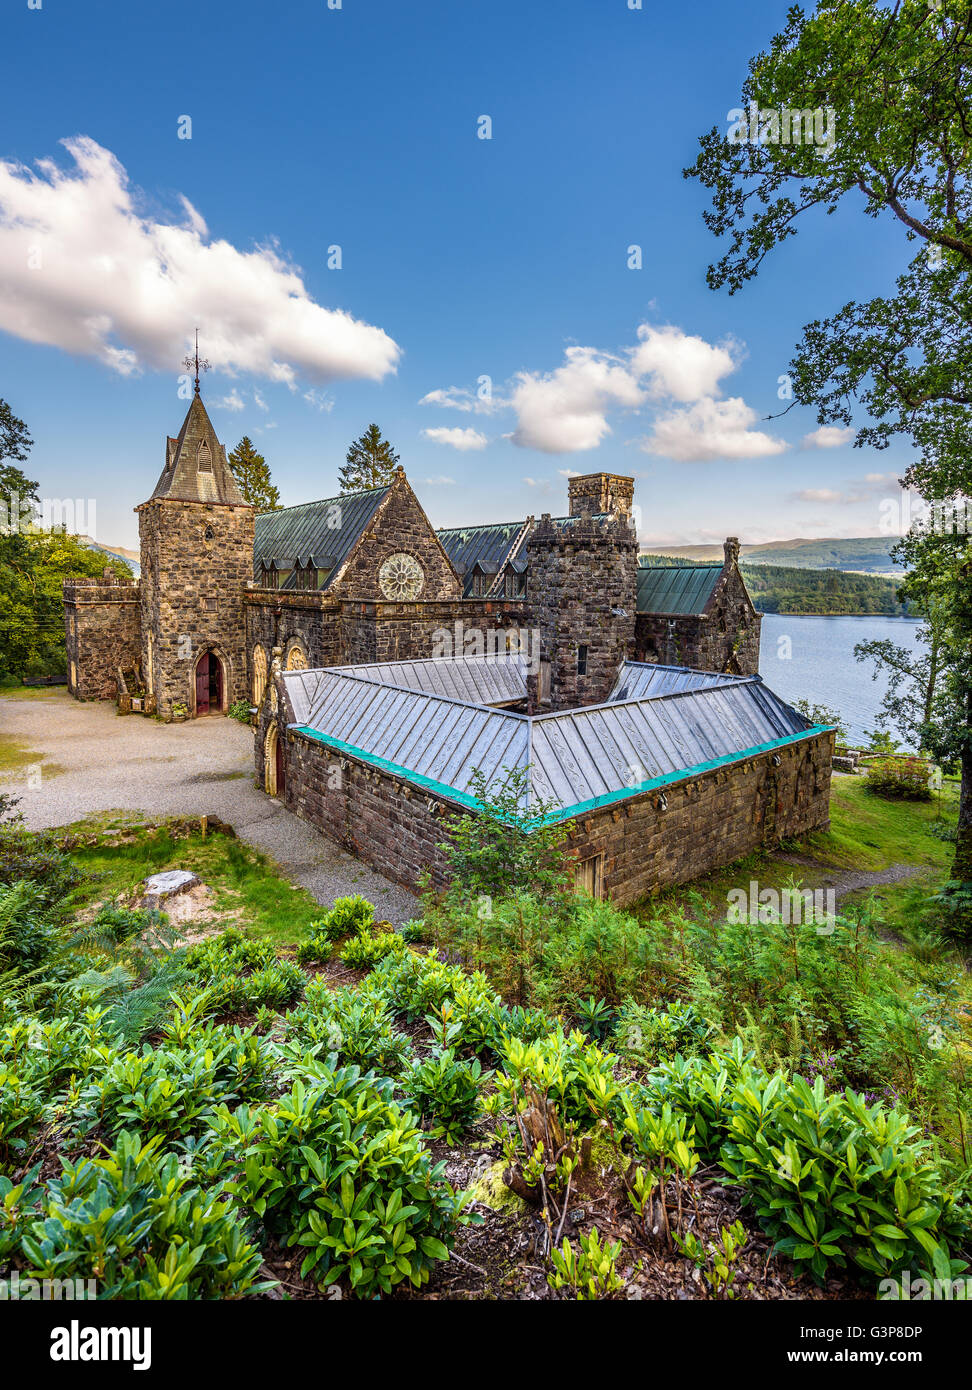 St. Conan's Kirk located on the banks of Loch Awe, Argyll and Bute, Scotland - Stock Image